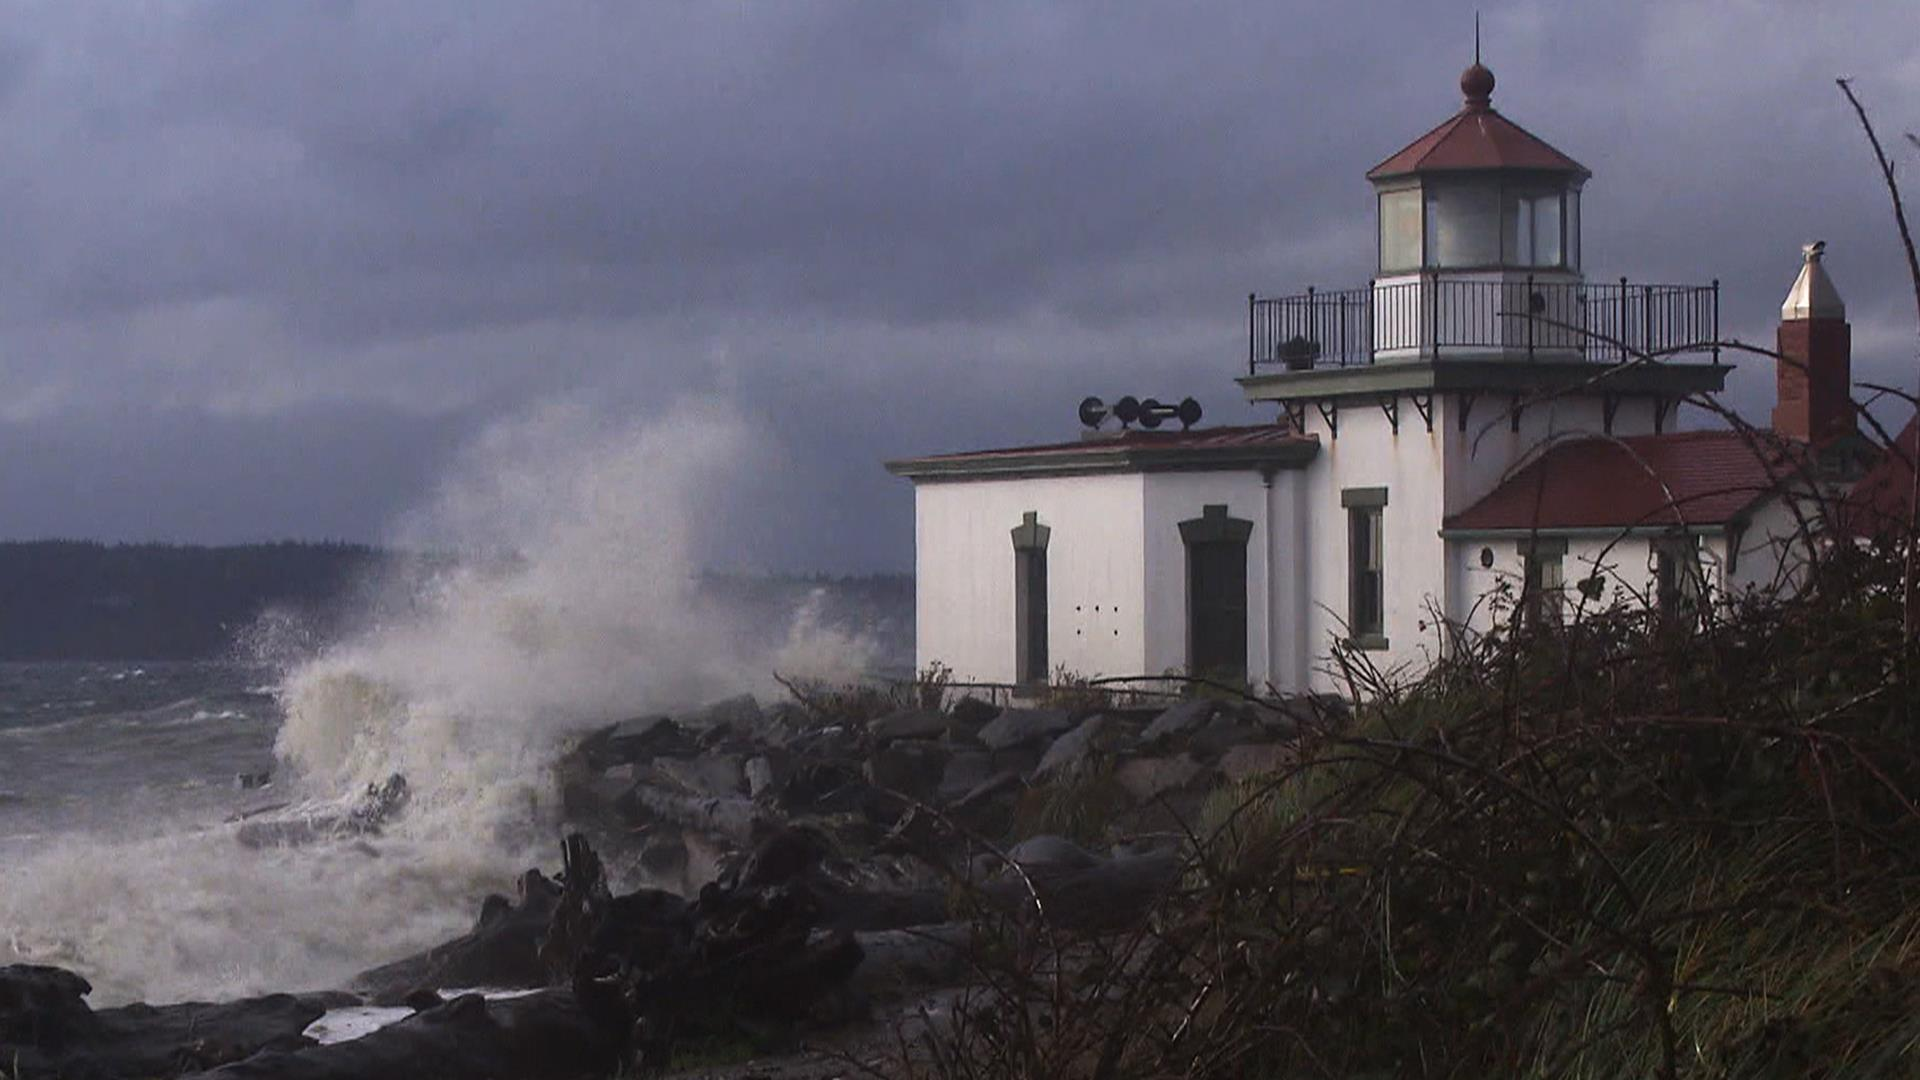 Pacific Northwest braces for major storm with hurricane